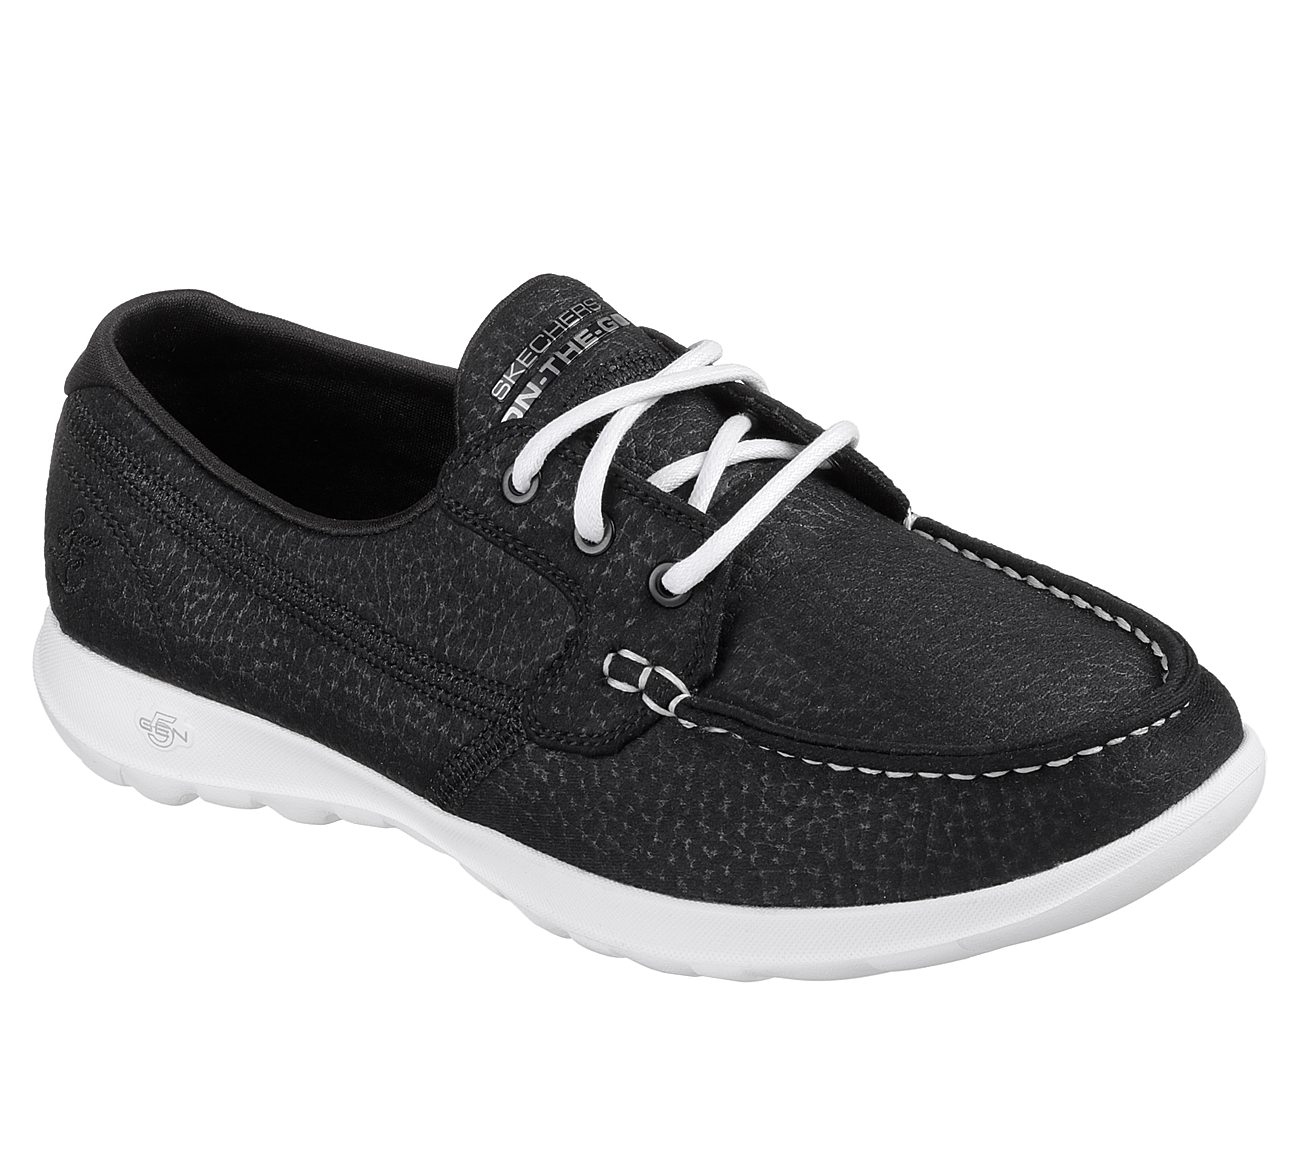 ba55d587ac4 Buy SKECHERS Skechers GOwalk Lite - Eclipse Skechers Performance ...